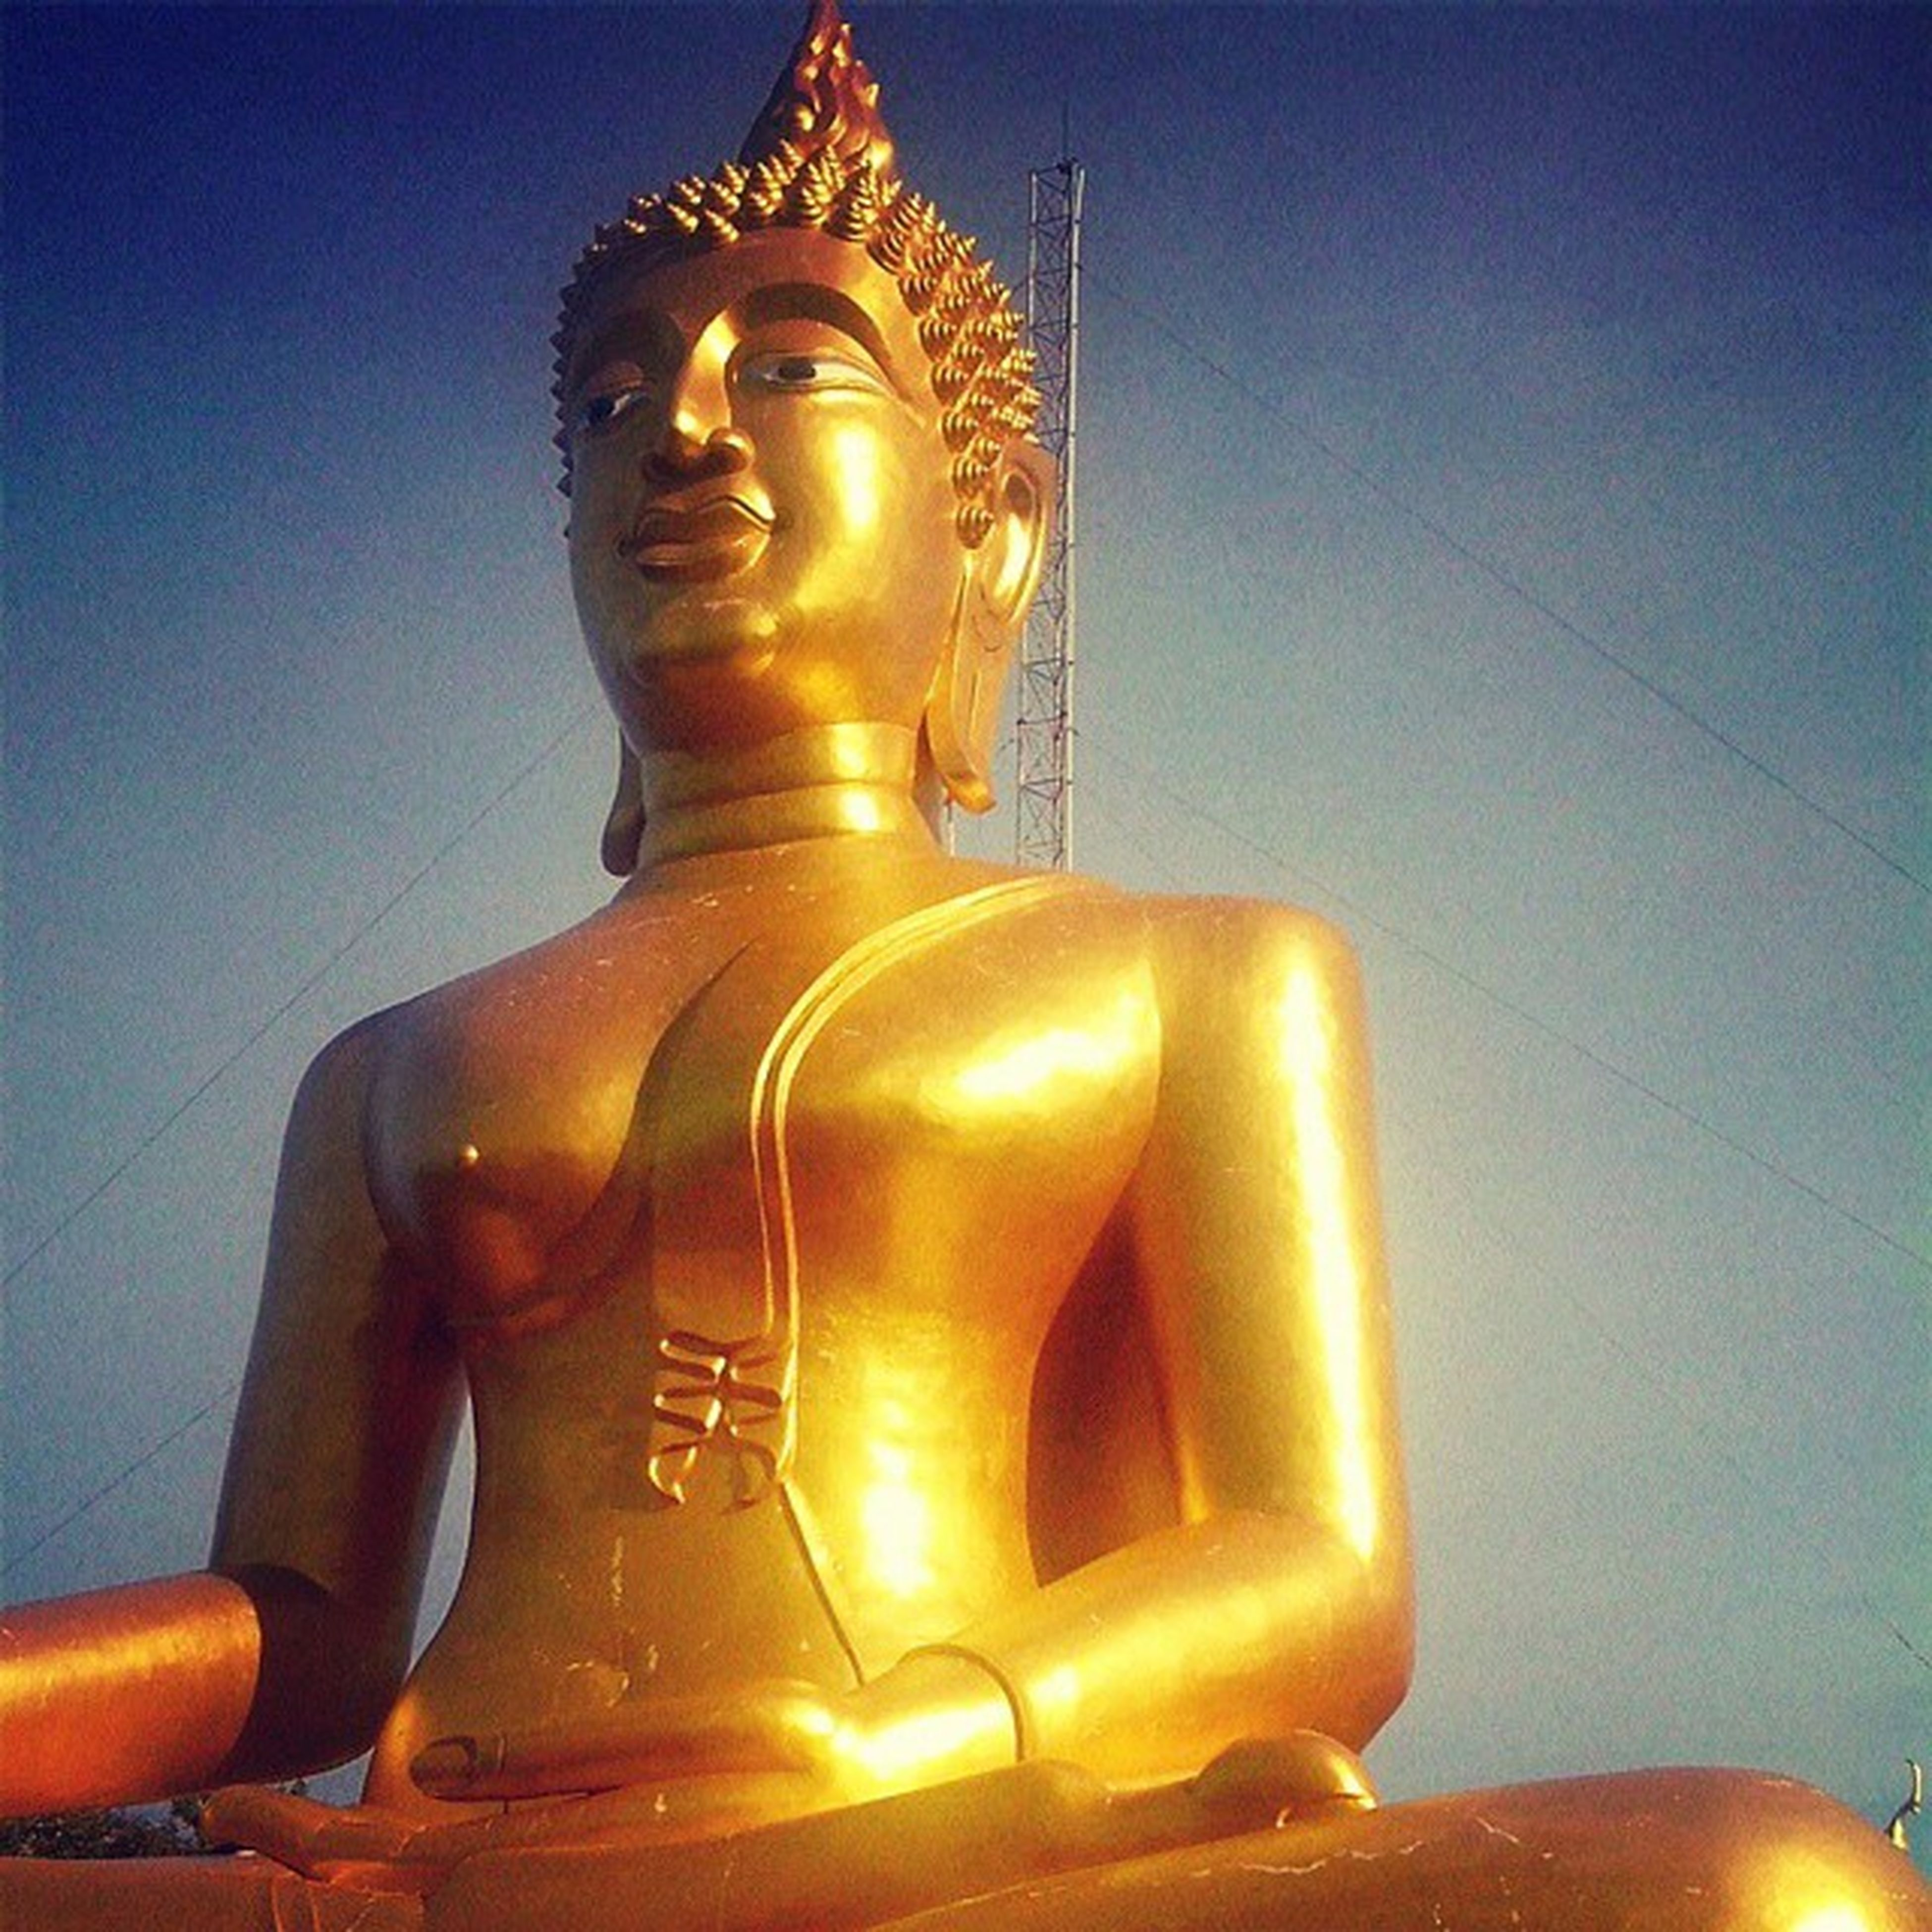 sculpture, statue, human representation, low angle view, art and craft, religion, art, creativity, spirituality, illuminated, place of worship, gold colored, buddha, carving - craft product, no people, sky